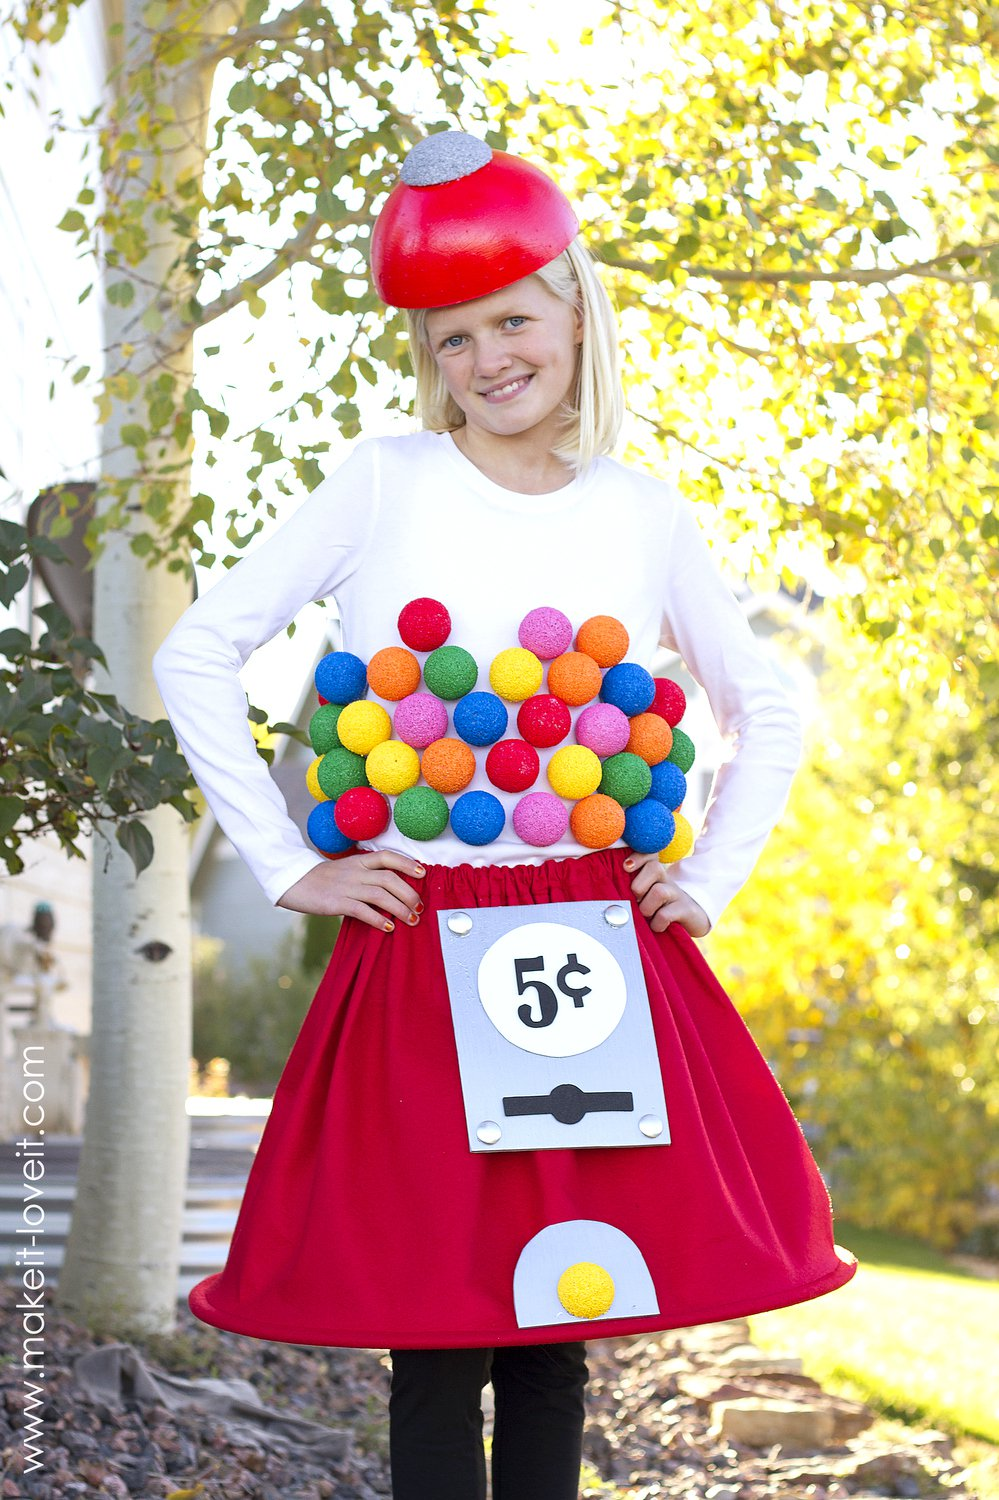 costume-gumball-machine